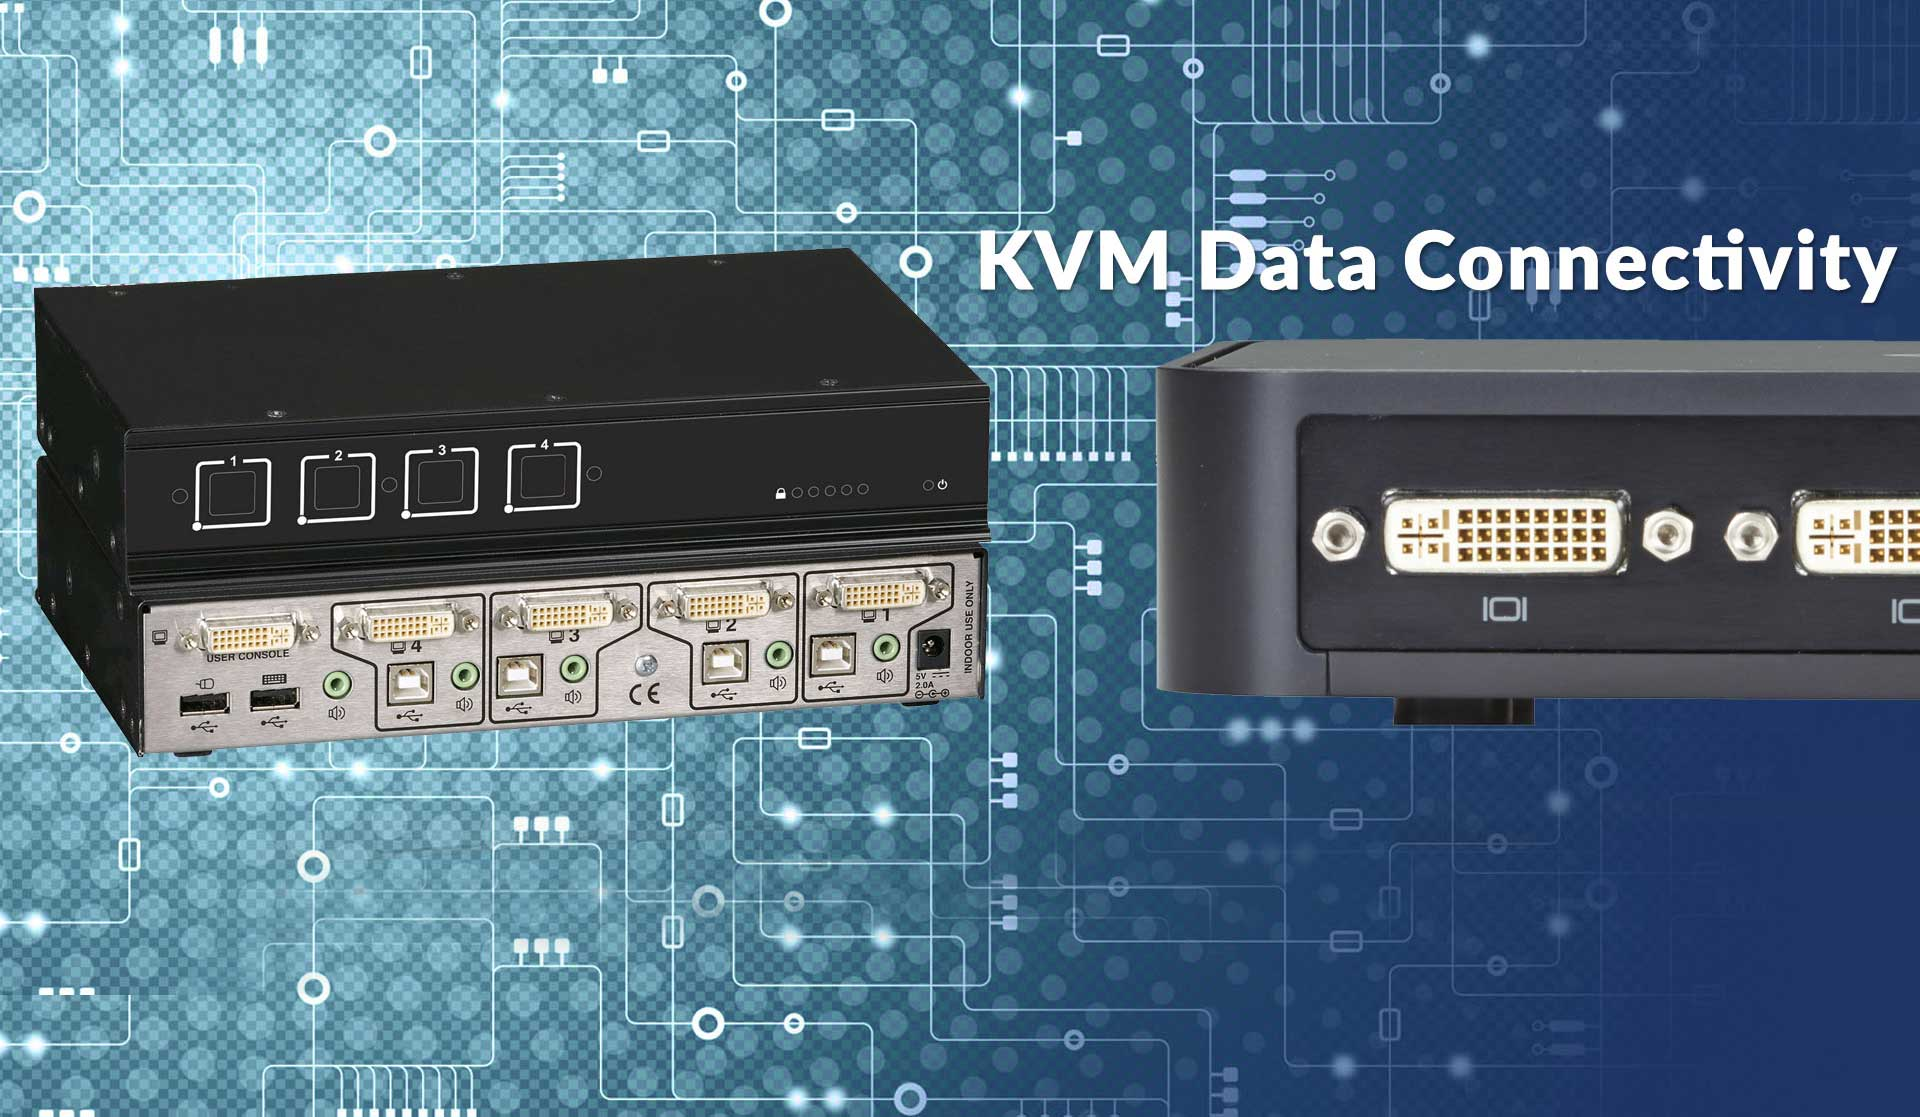 KVM Data Connectivity